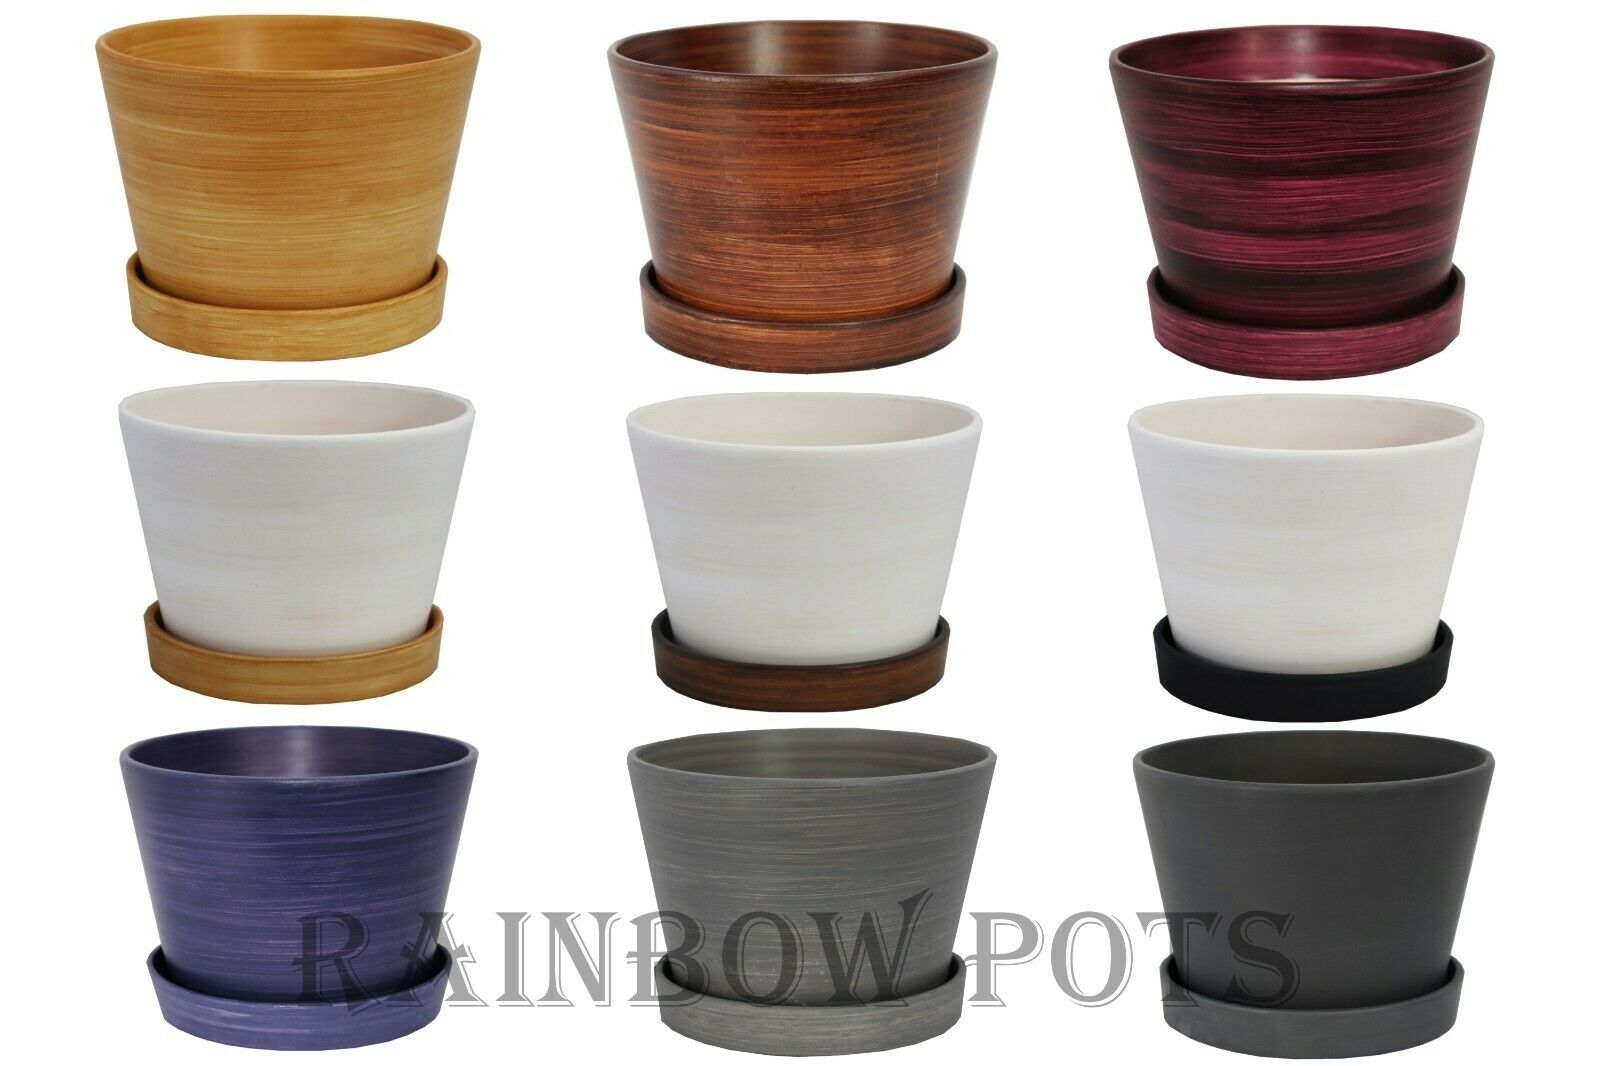 CERAMIC PLANT POTS WITH SAUCER LARGE AND SMALL SIZE HAND PAINTED PLANTER BONSAI